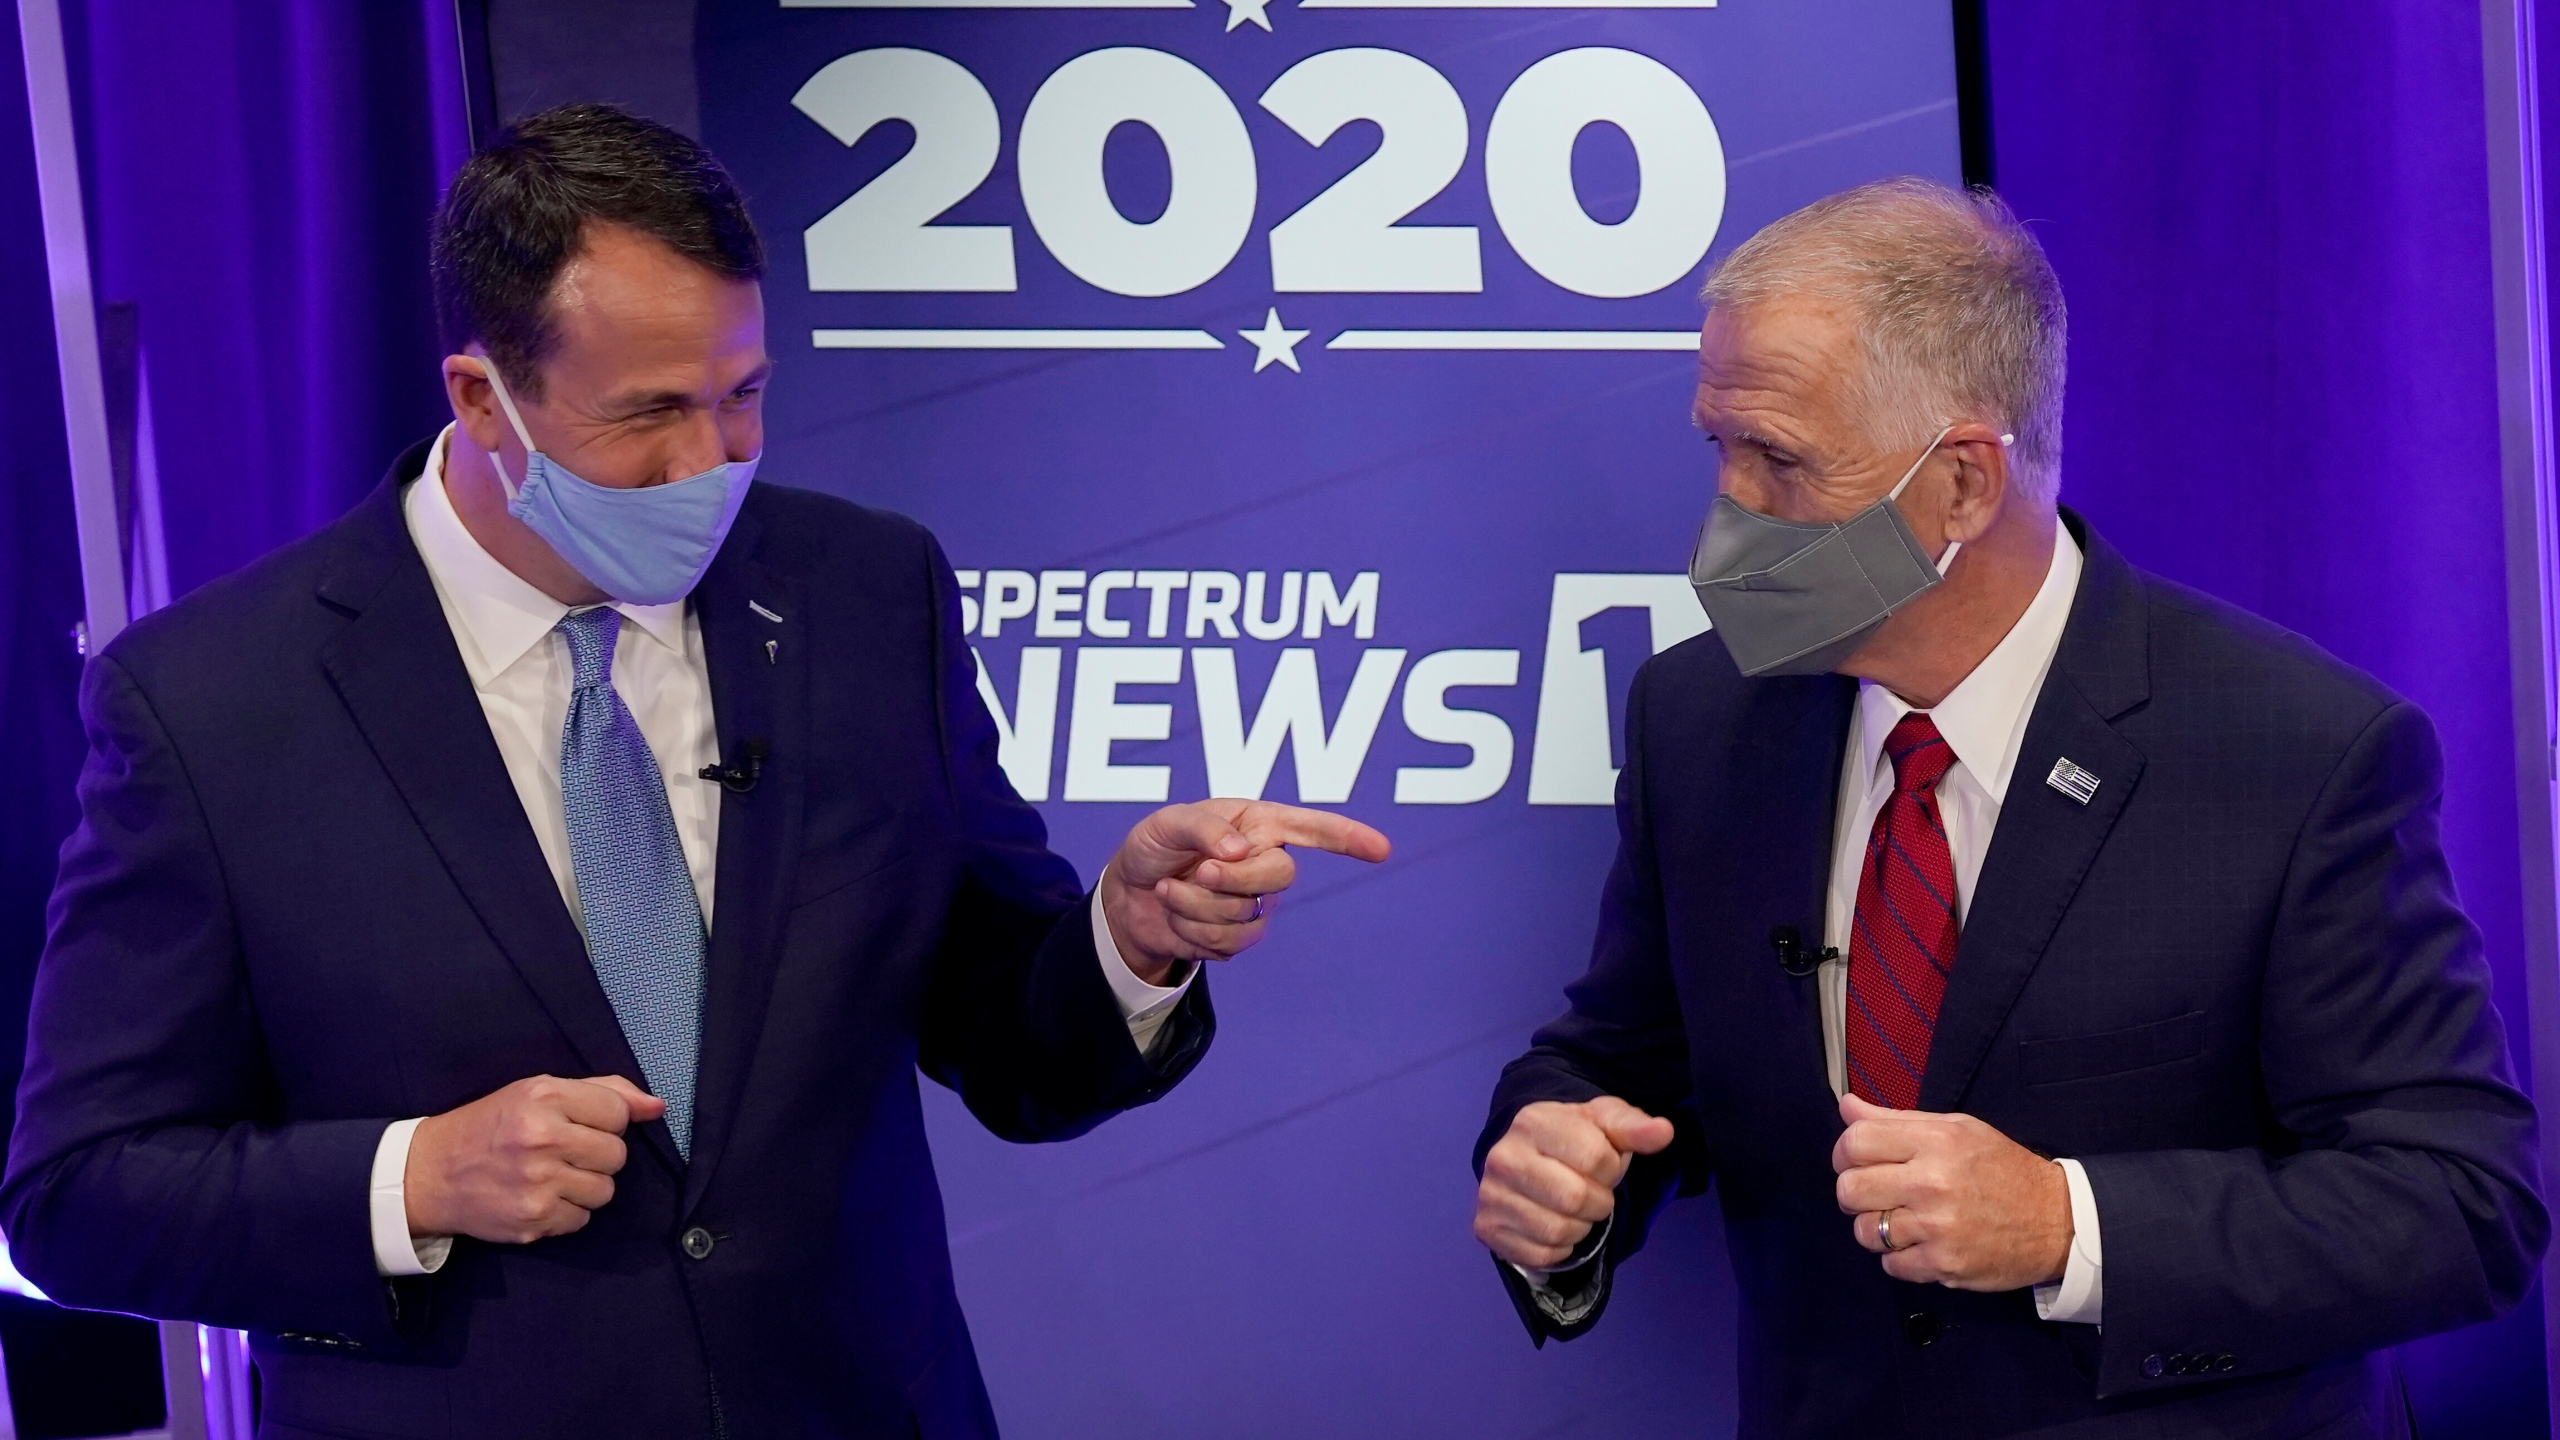 Democratic challenger Cal Cunningham, left, and U.S. Sen. Thom Tillis, R-N.C. greet each other after a televised debate Thursday, Oct. 1, 2020 in Raleigh, N.C. (AP Photo/Gerry Broome, Pool)